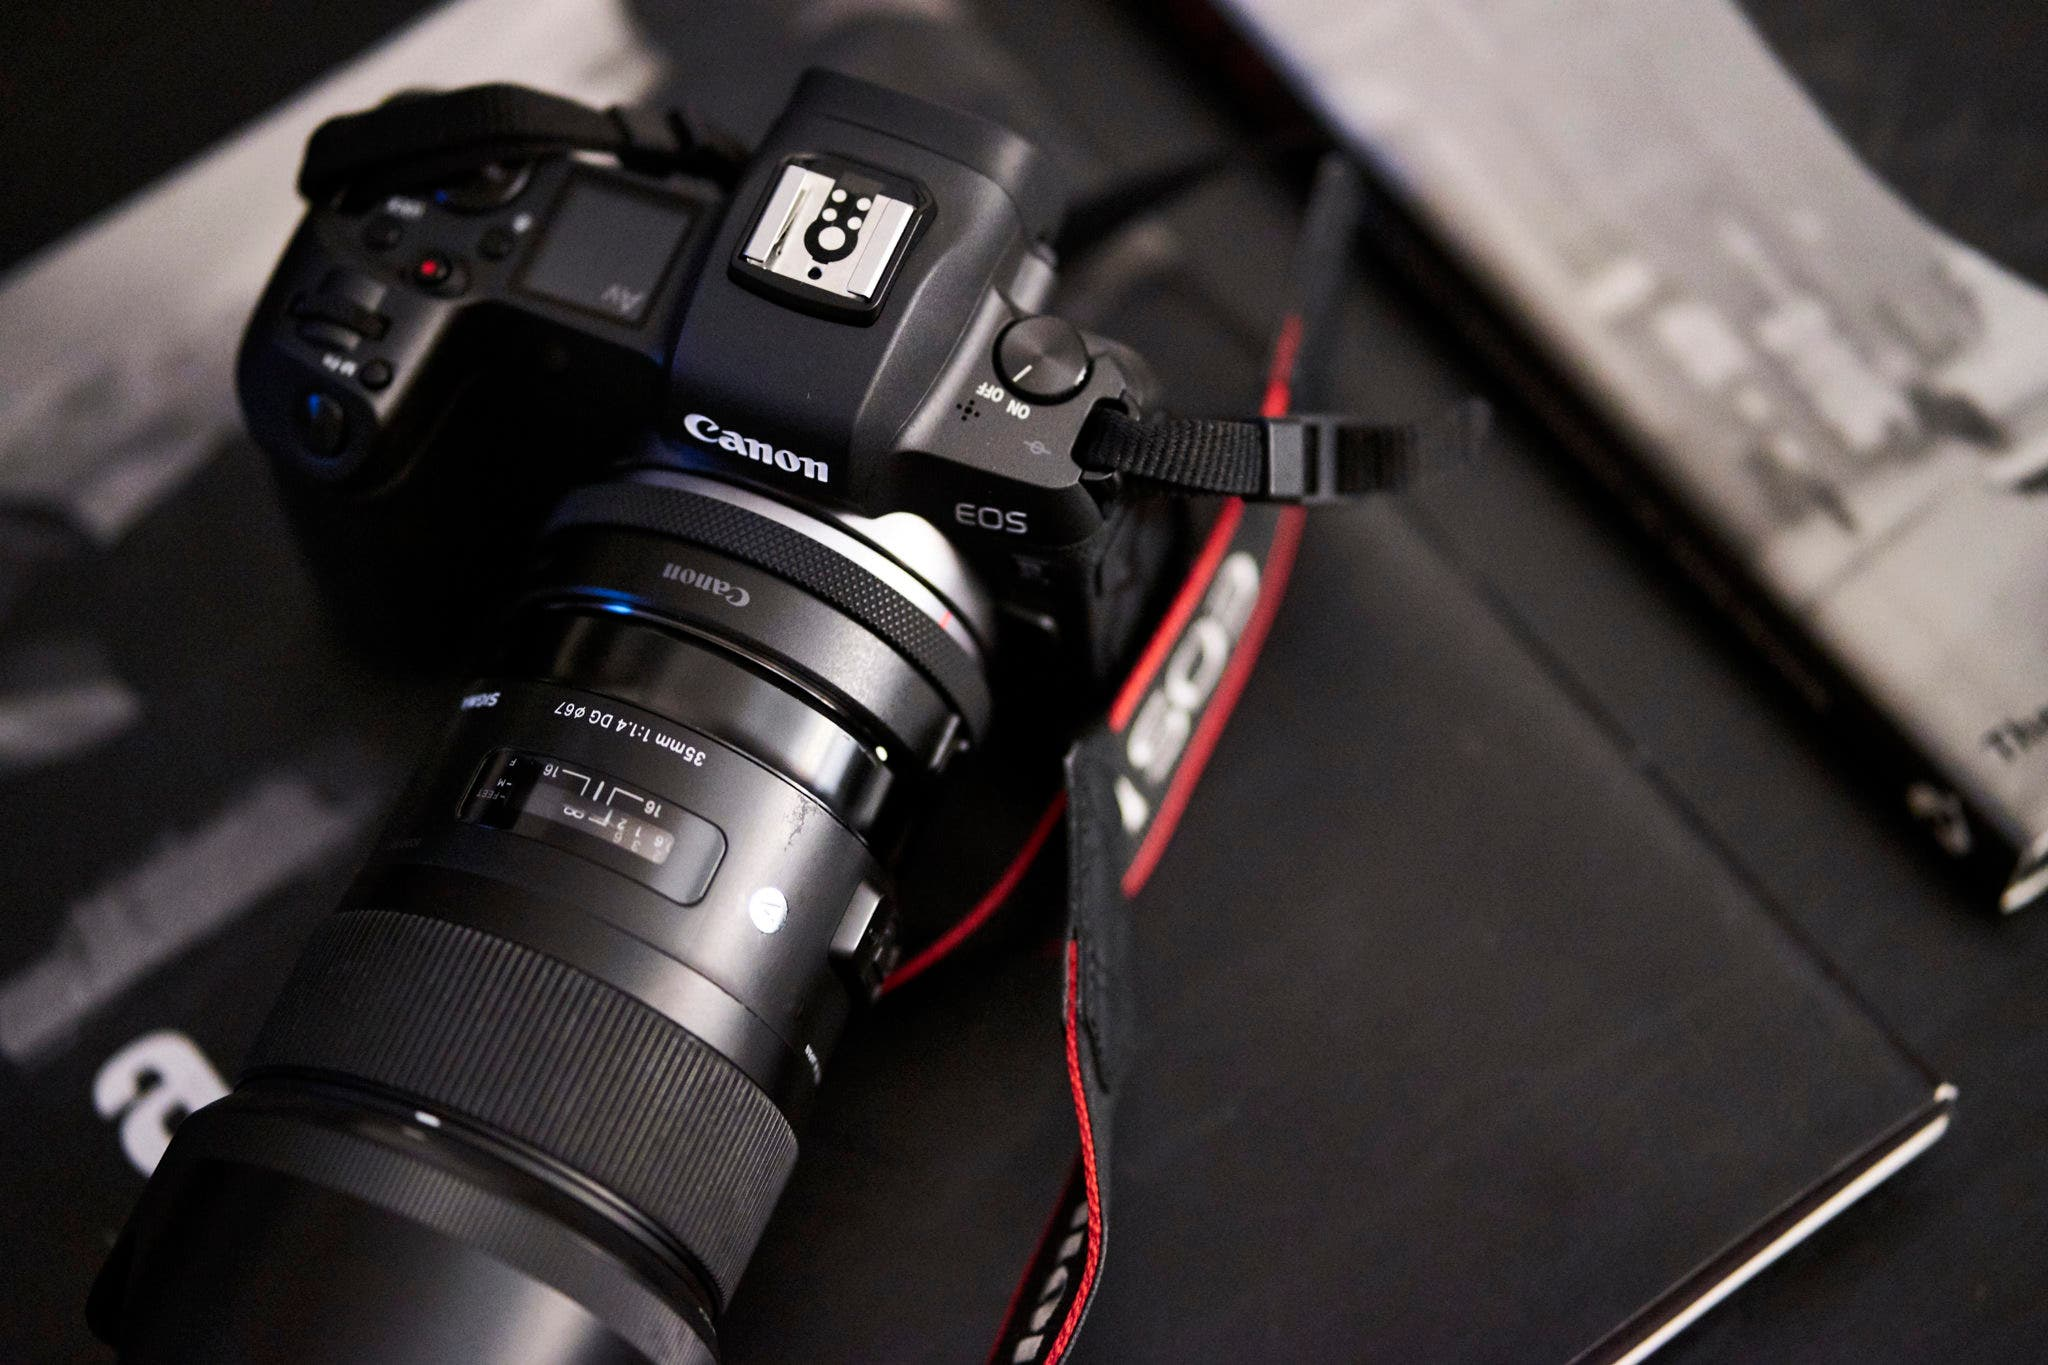 Special Report: Using the Sigma 35mm F1.4 Art Lens and Canon Control Ring Mount Adapter With the Canon EOS R